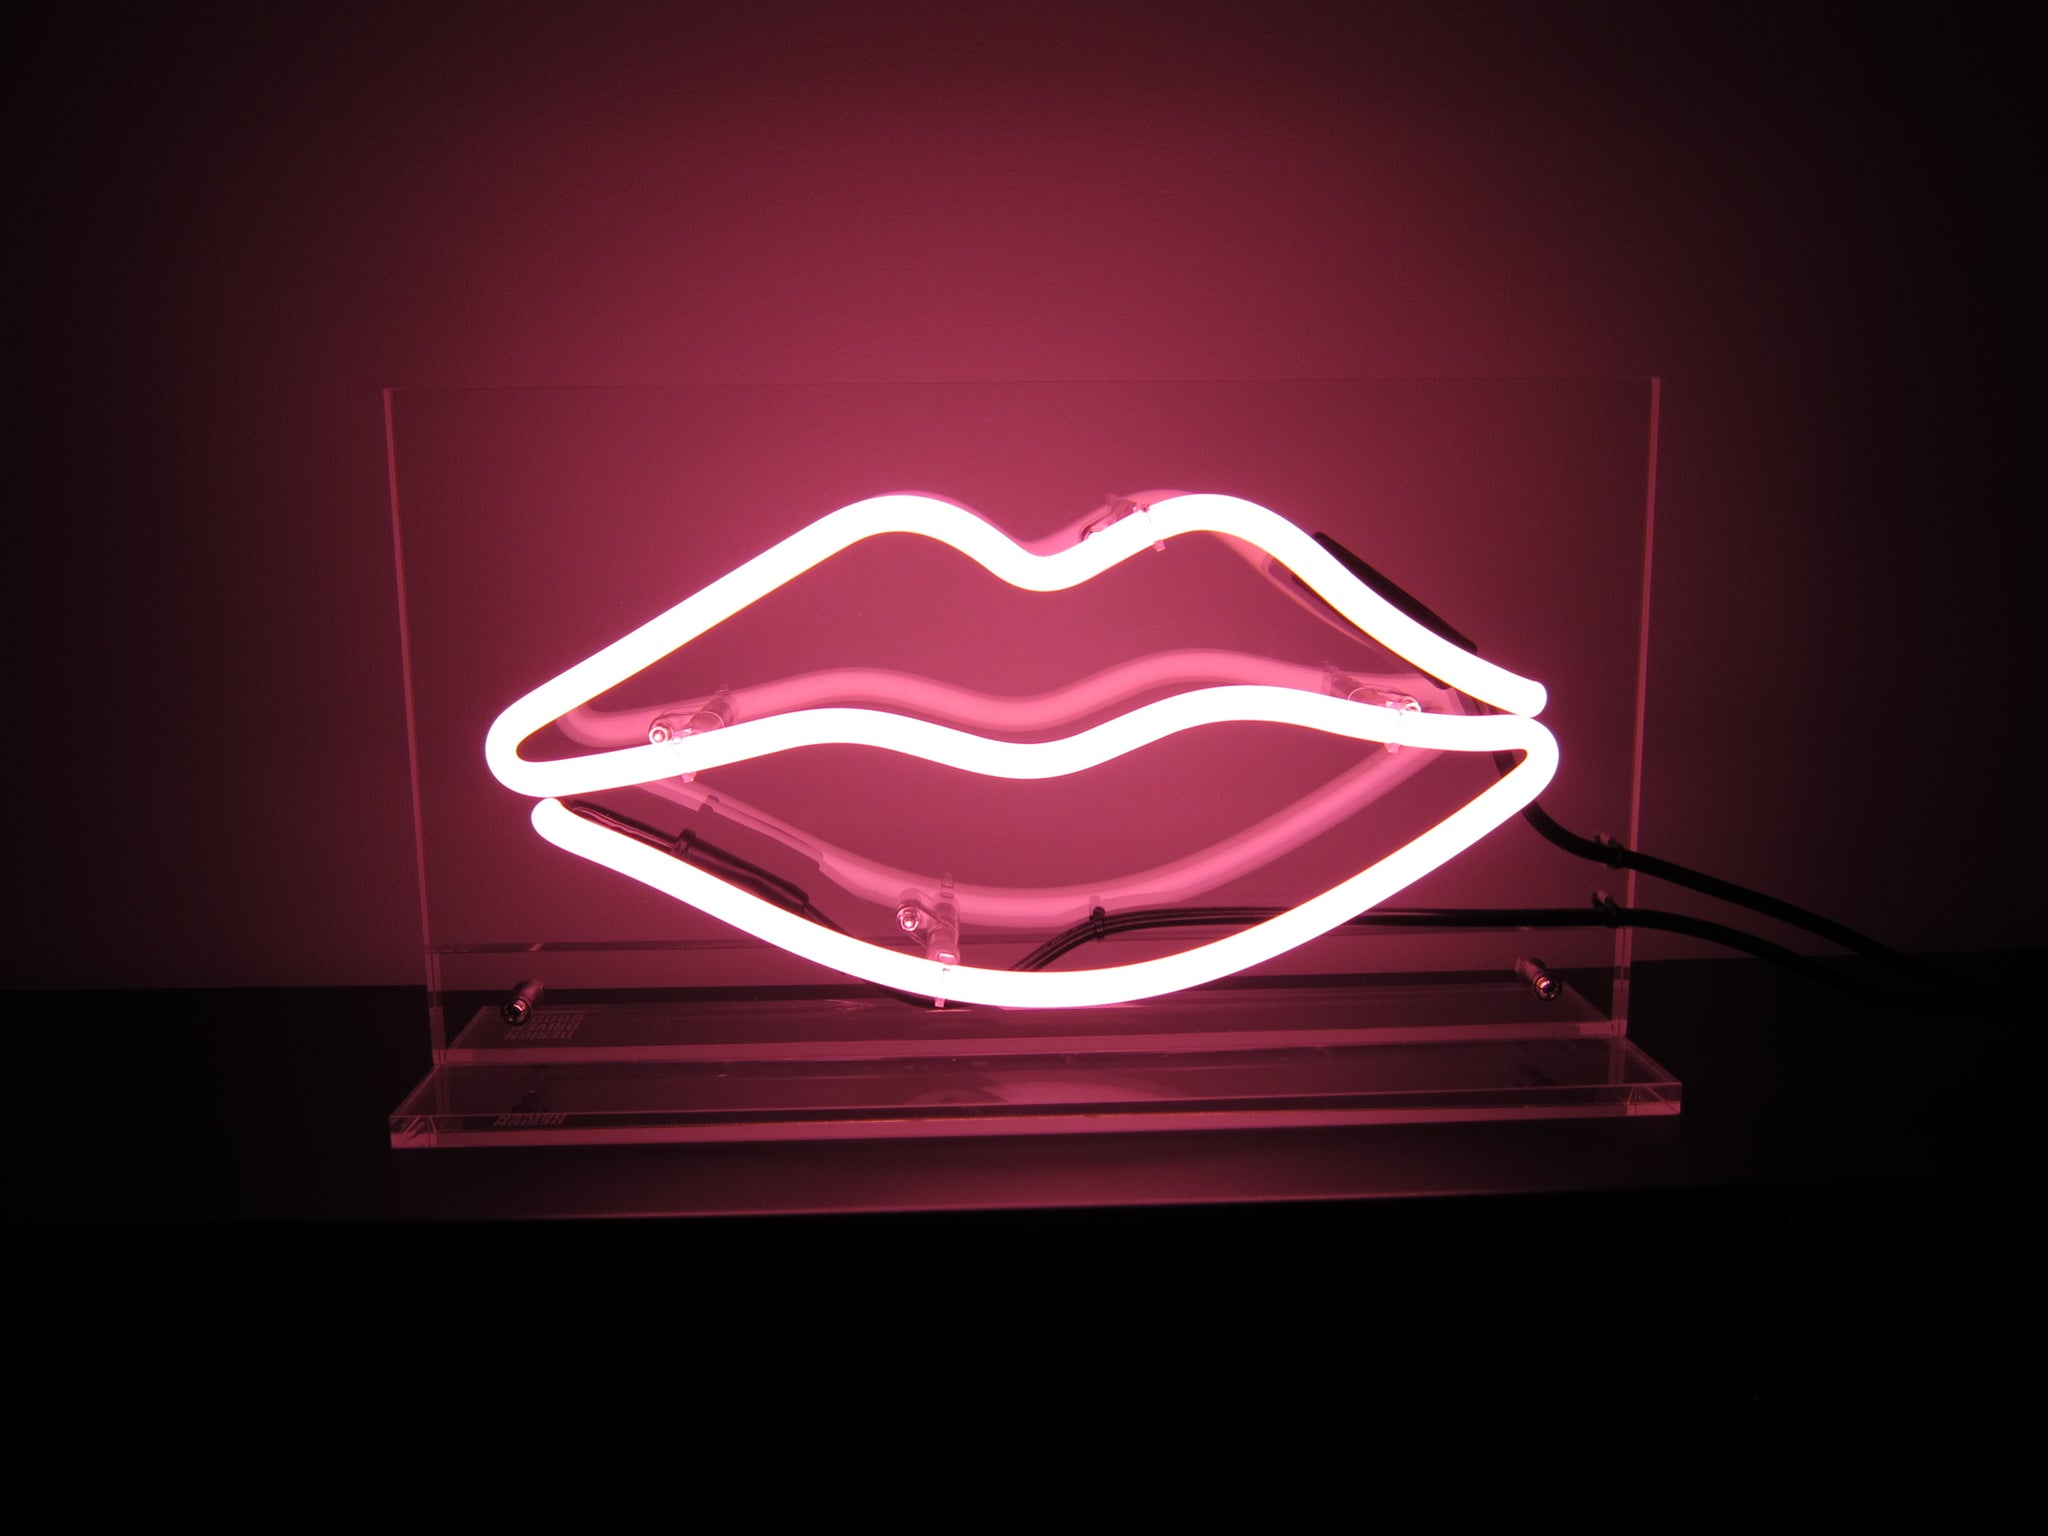 Lips (Display Set) Neon - Design Driven Goods